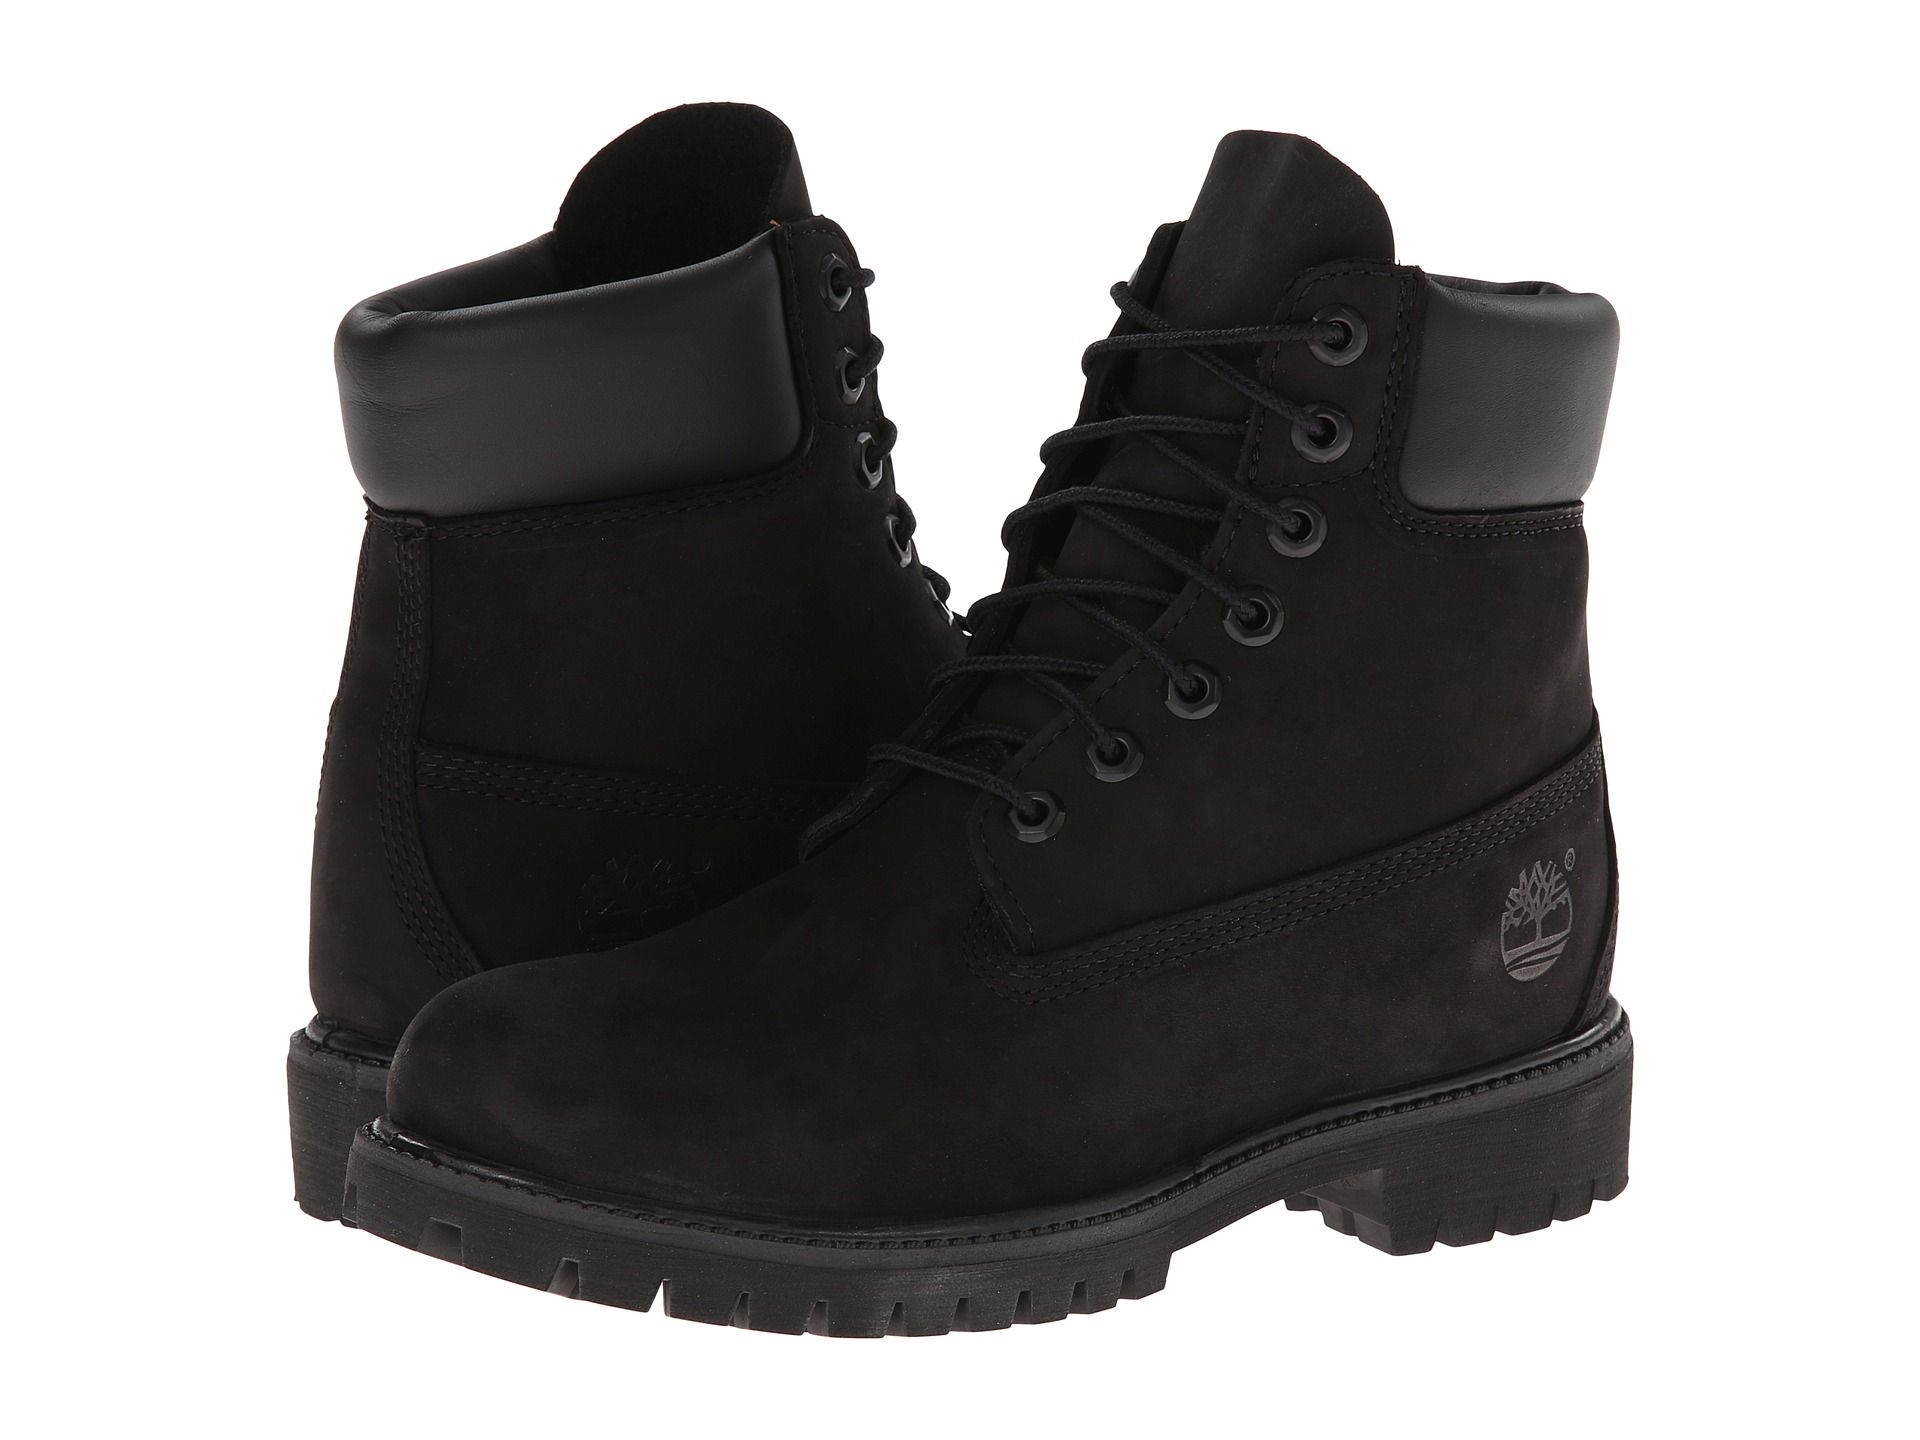 Image result for black timberland boots